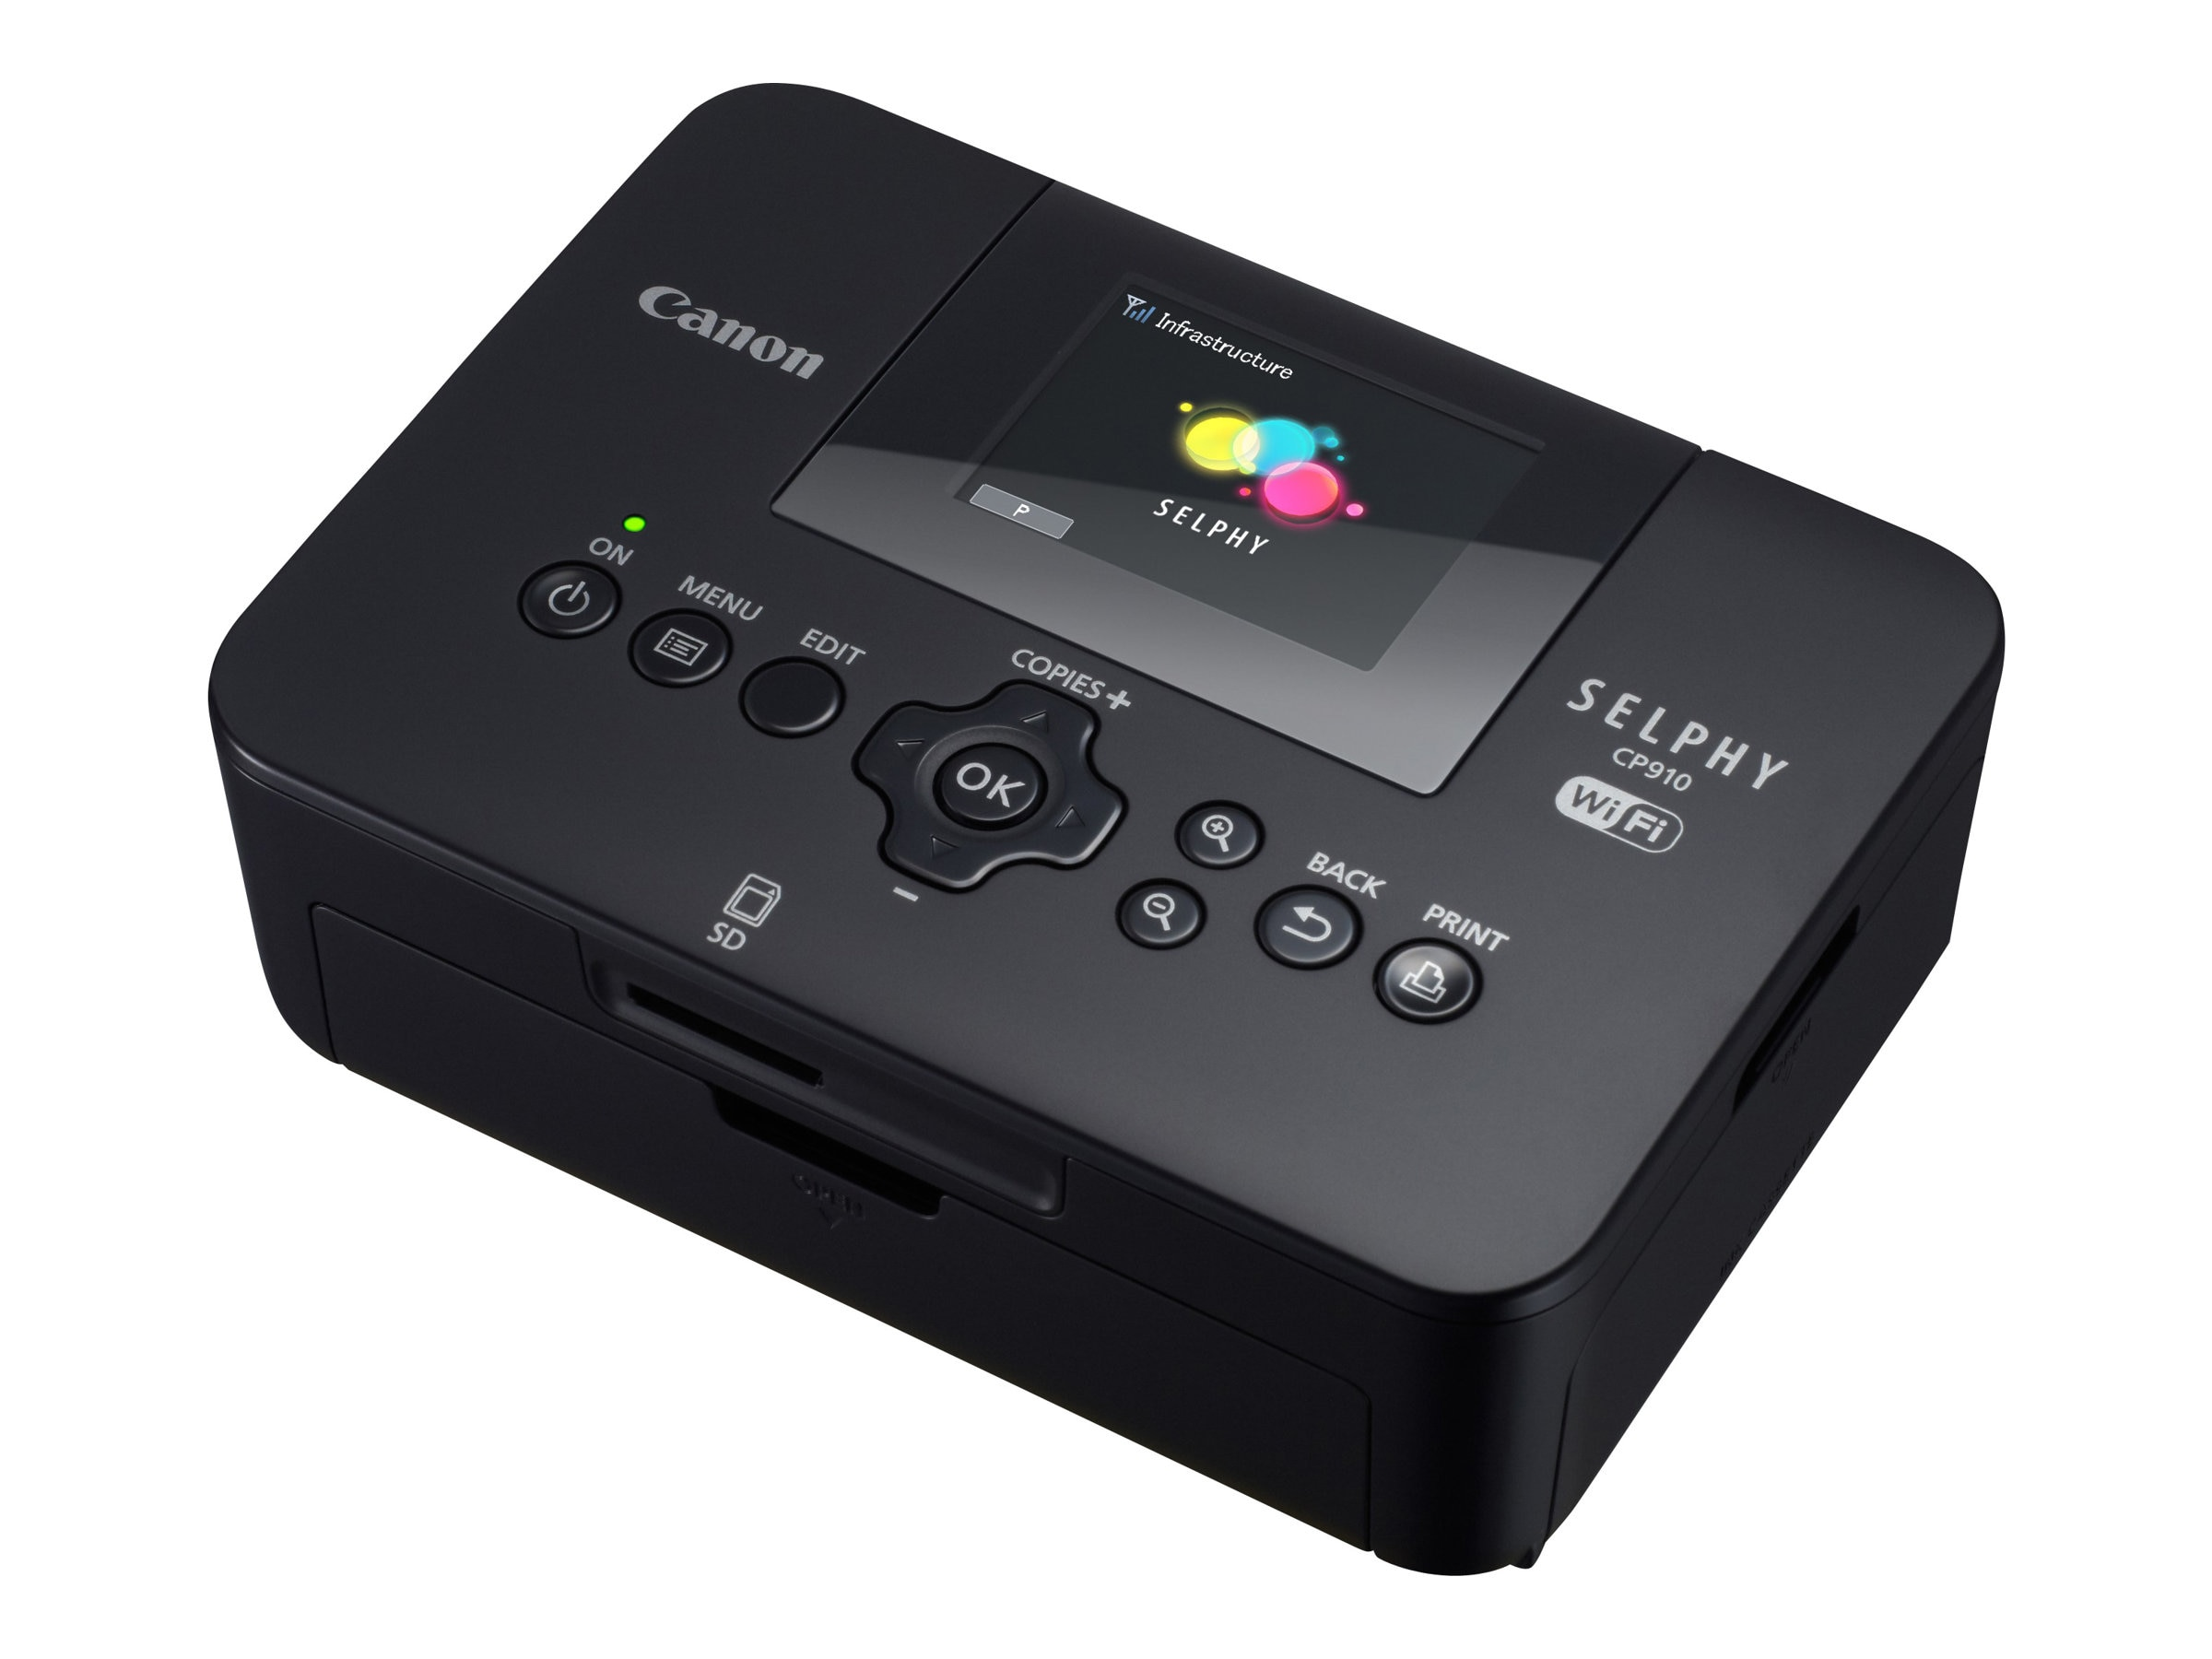 Canon SELPHY CP910 Compact Photo Printer - Black, 8426B001, 16694318, Printers - Photo